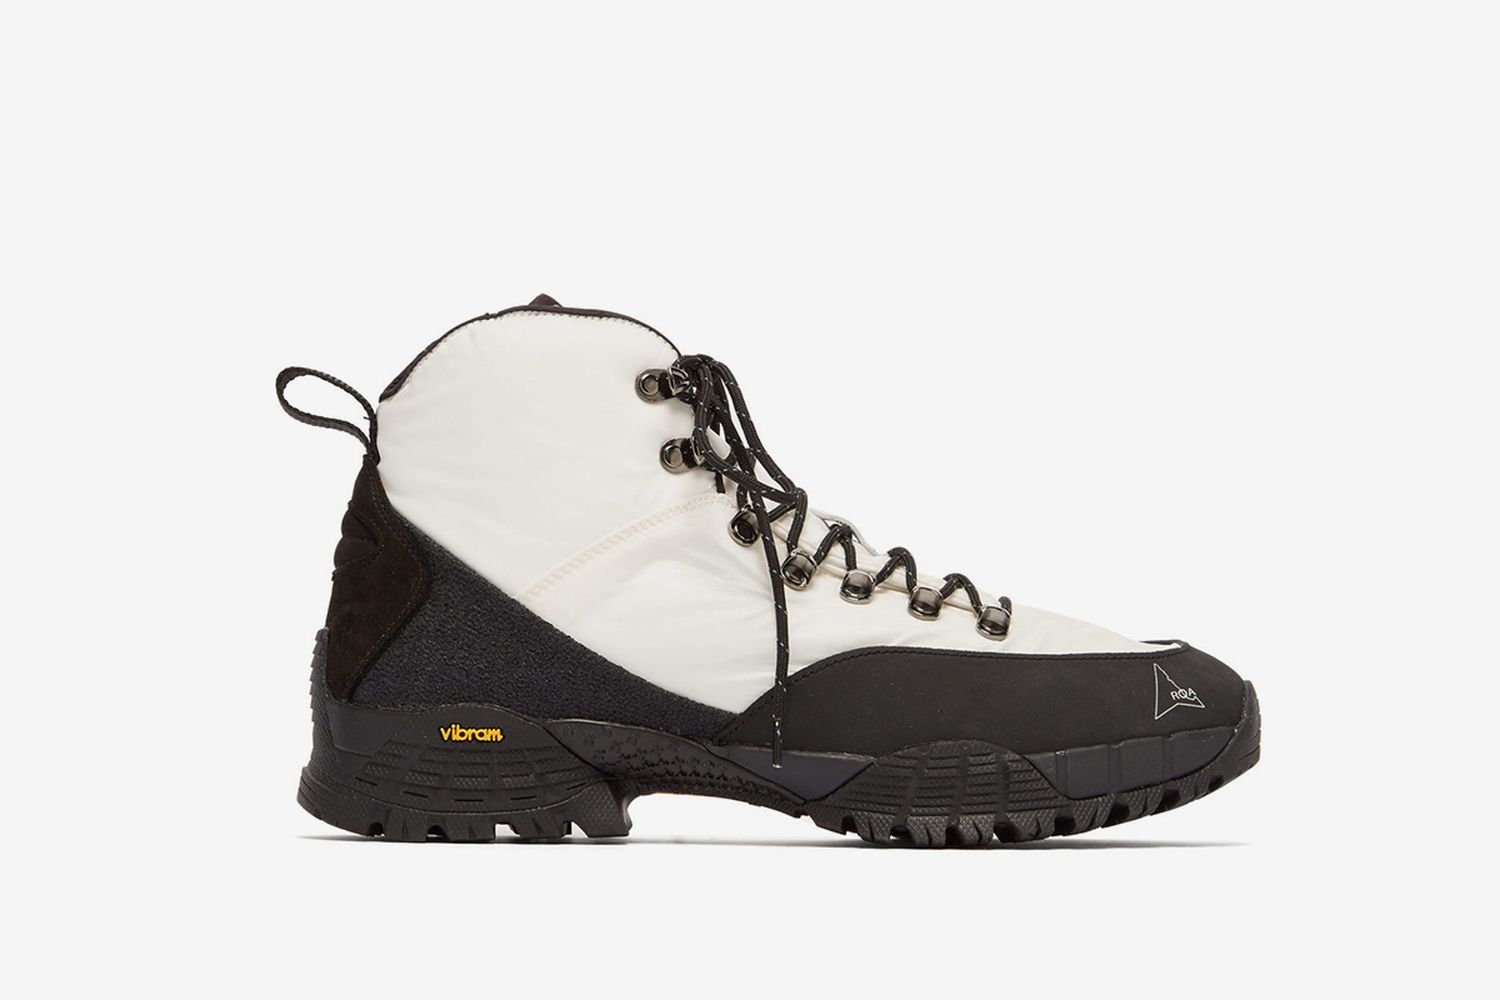 Andreas Lace Up Shell Hiking Boots